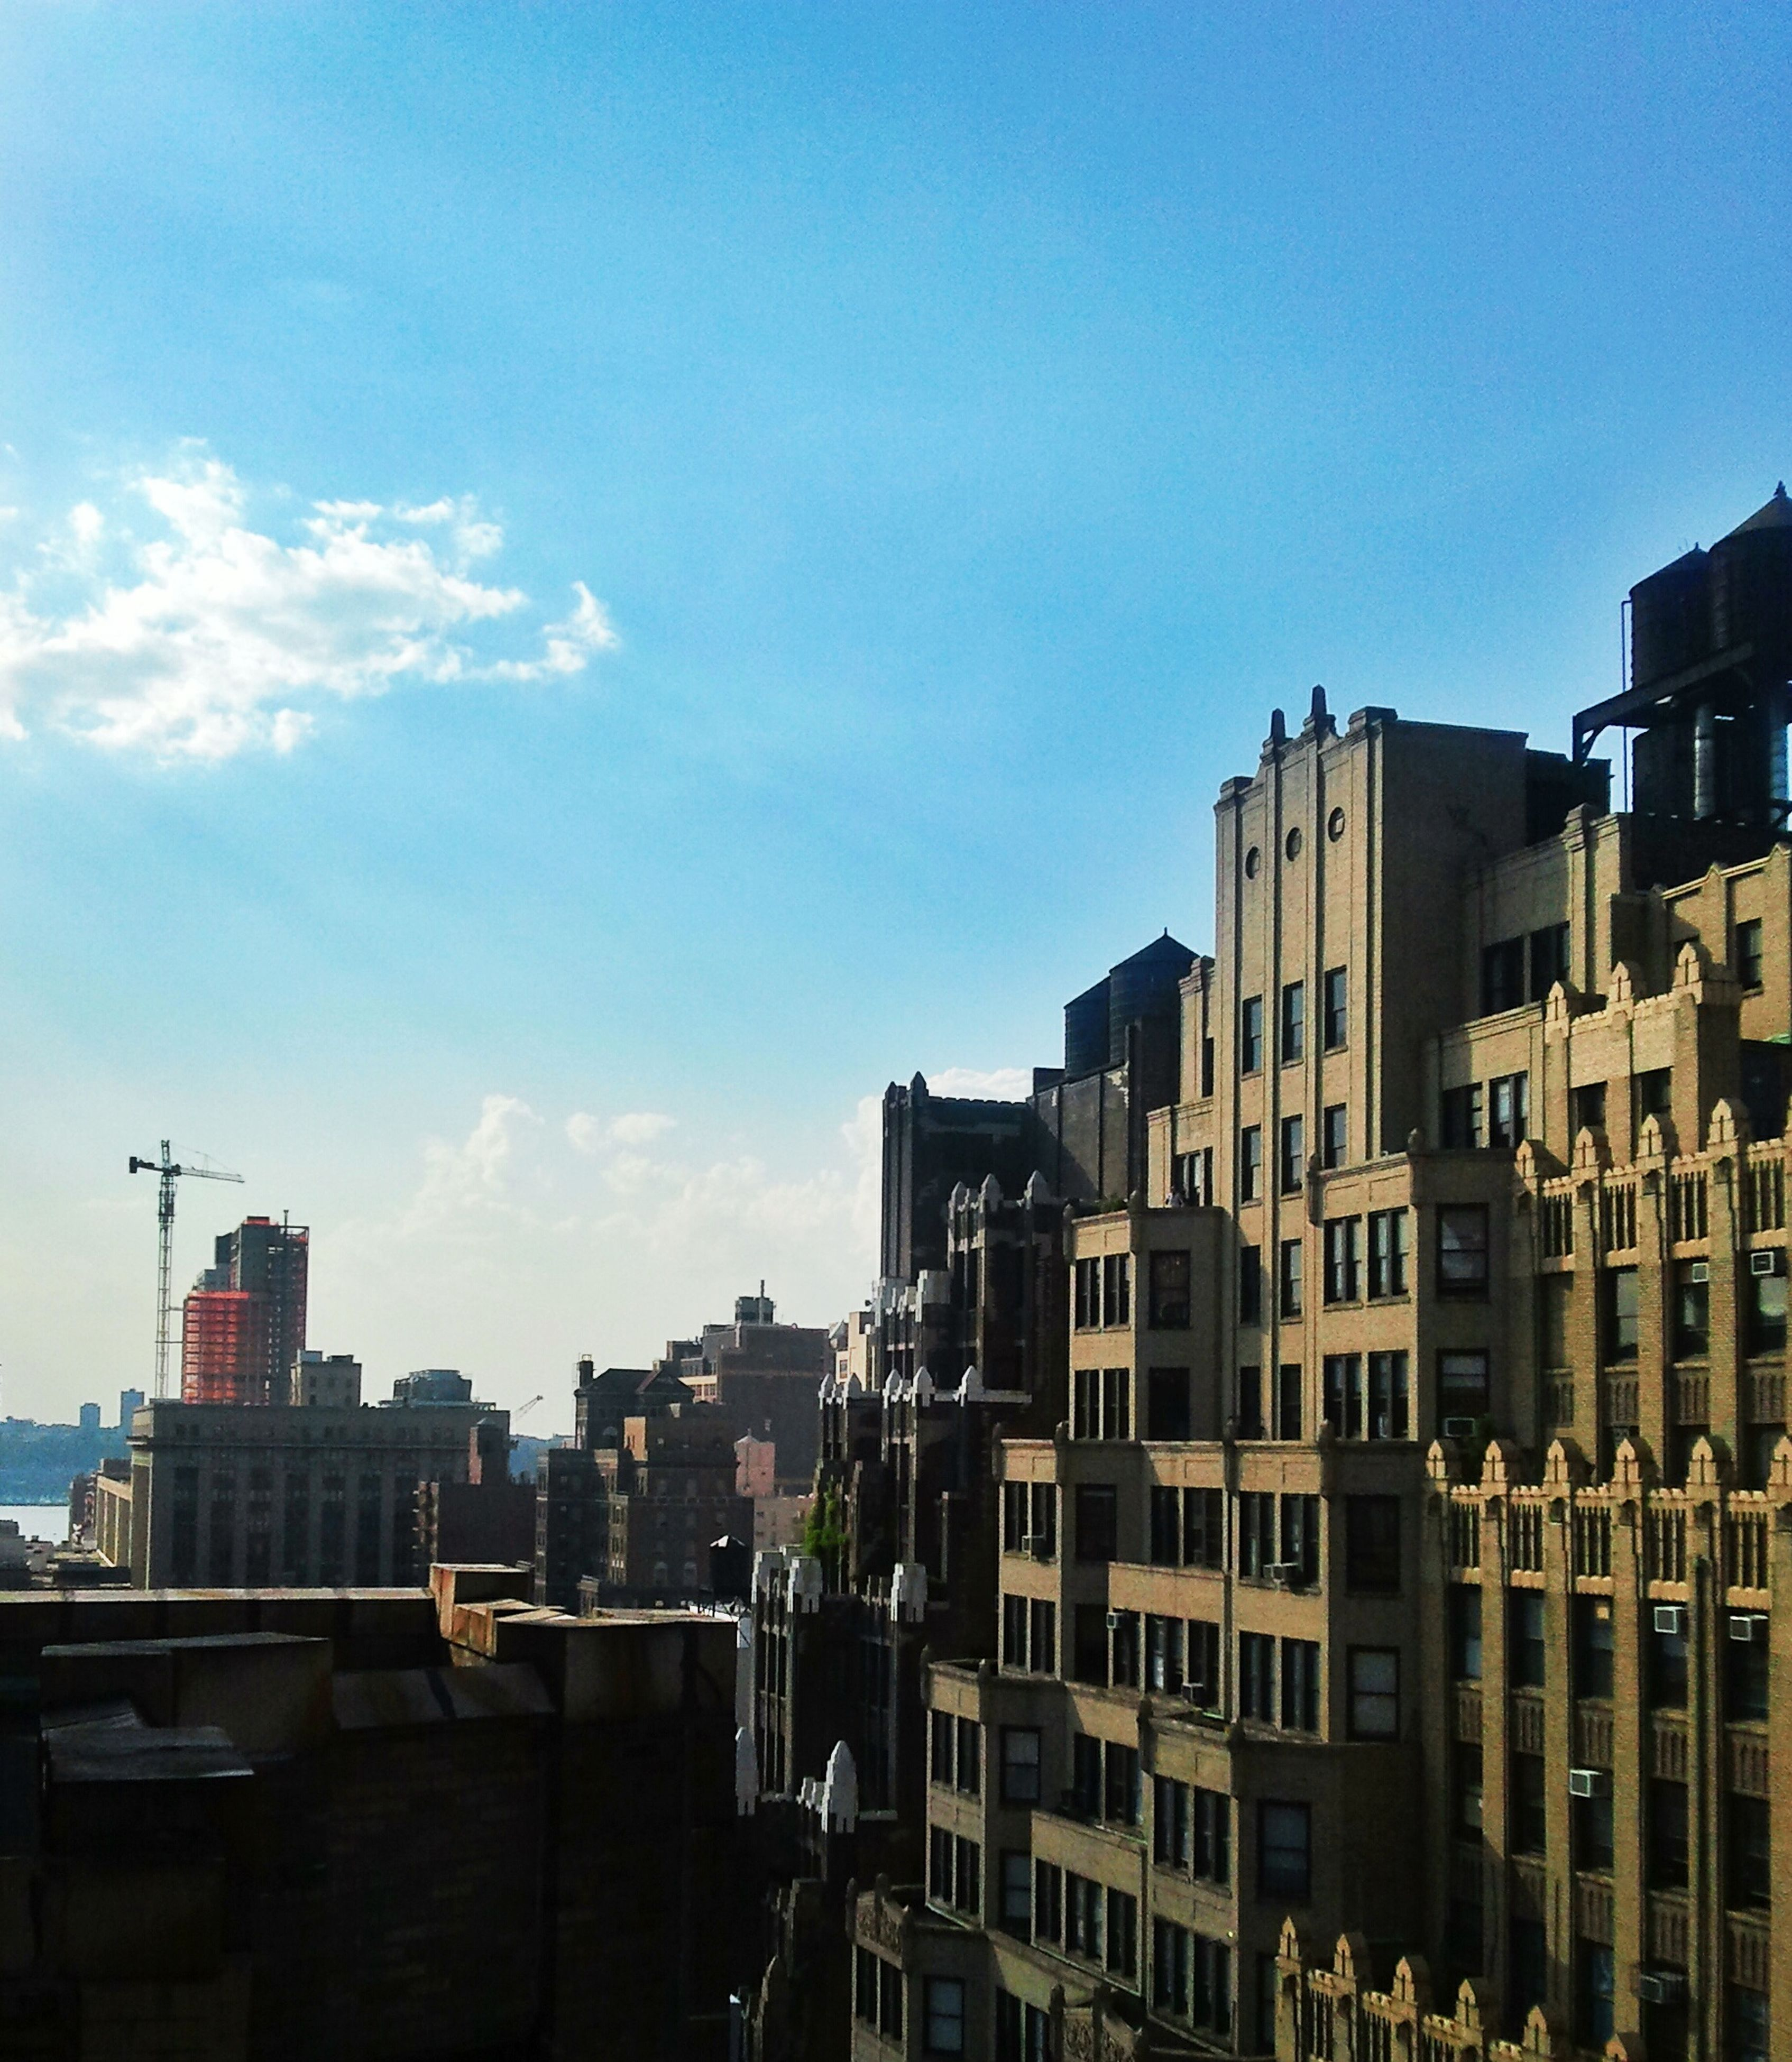 building exterior, architecture, built structure, city, residential building, sky, residential structure, blue, building, residential district, clear sky, house, day, sunlight, outdoors, cityscape, copy space, no people, town, city life